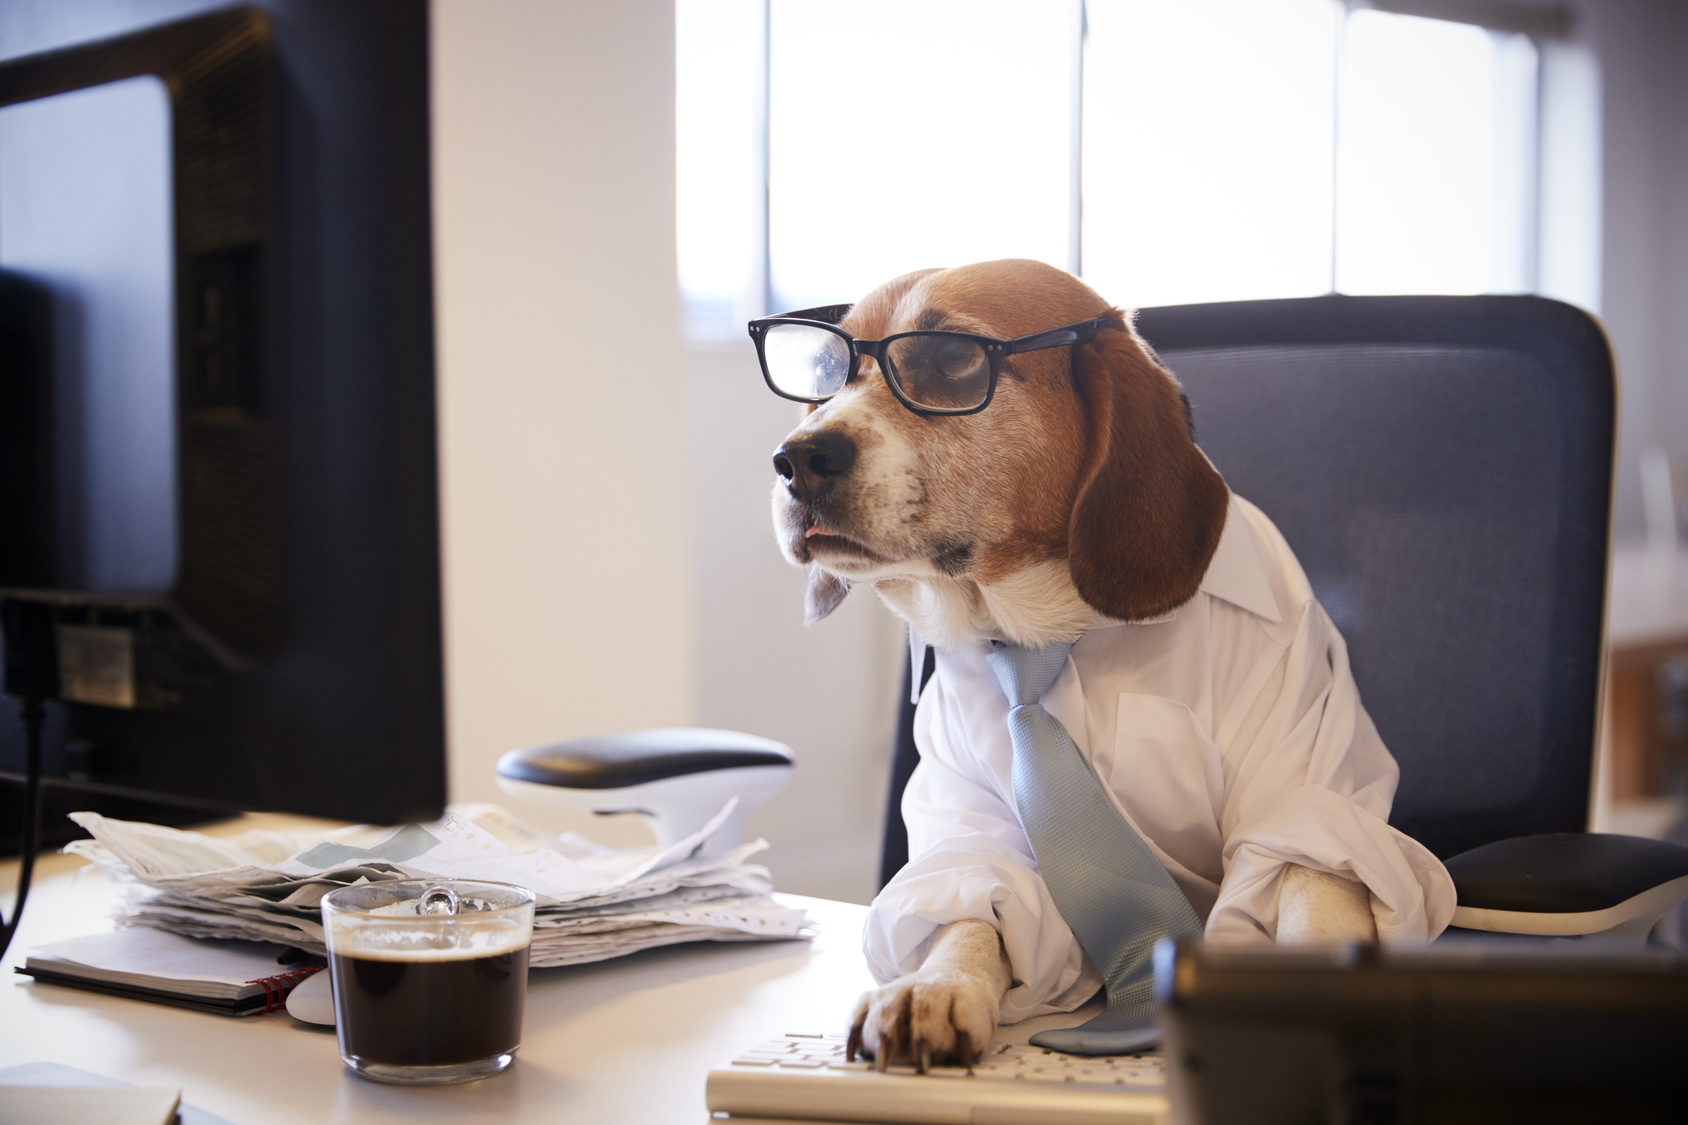 Beagle-Dressed-as-Businessman-Watching-Computer